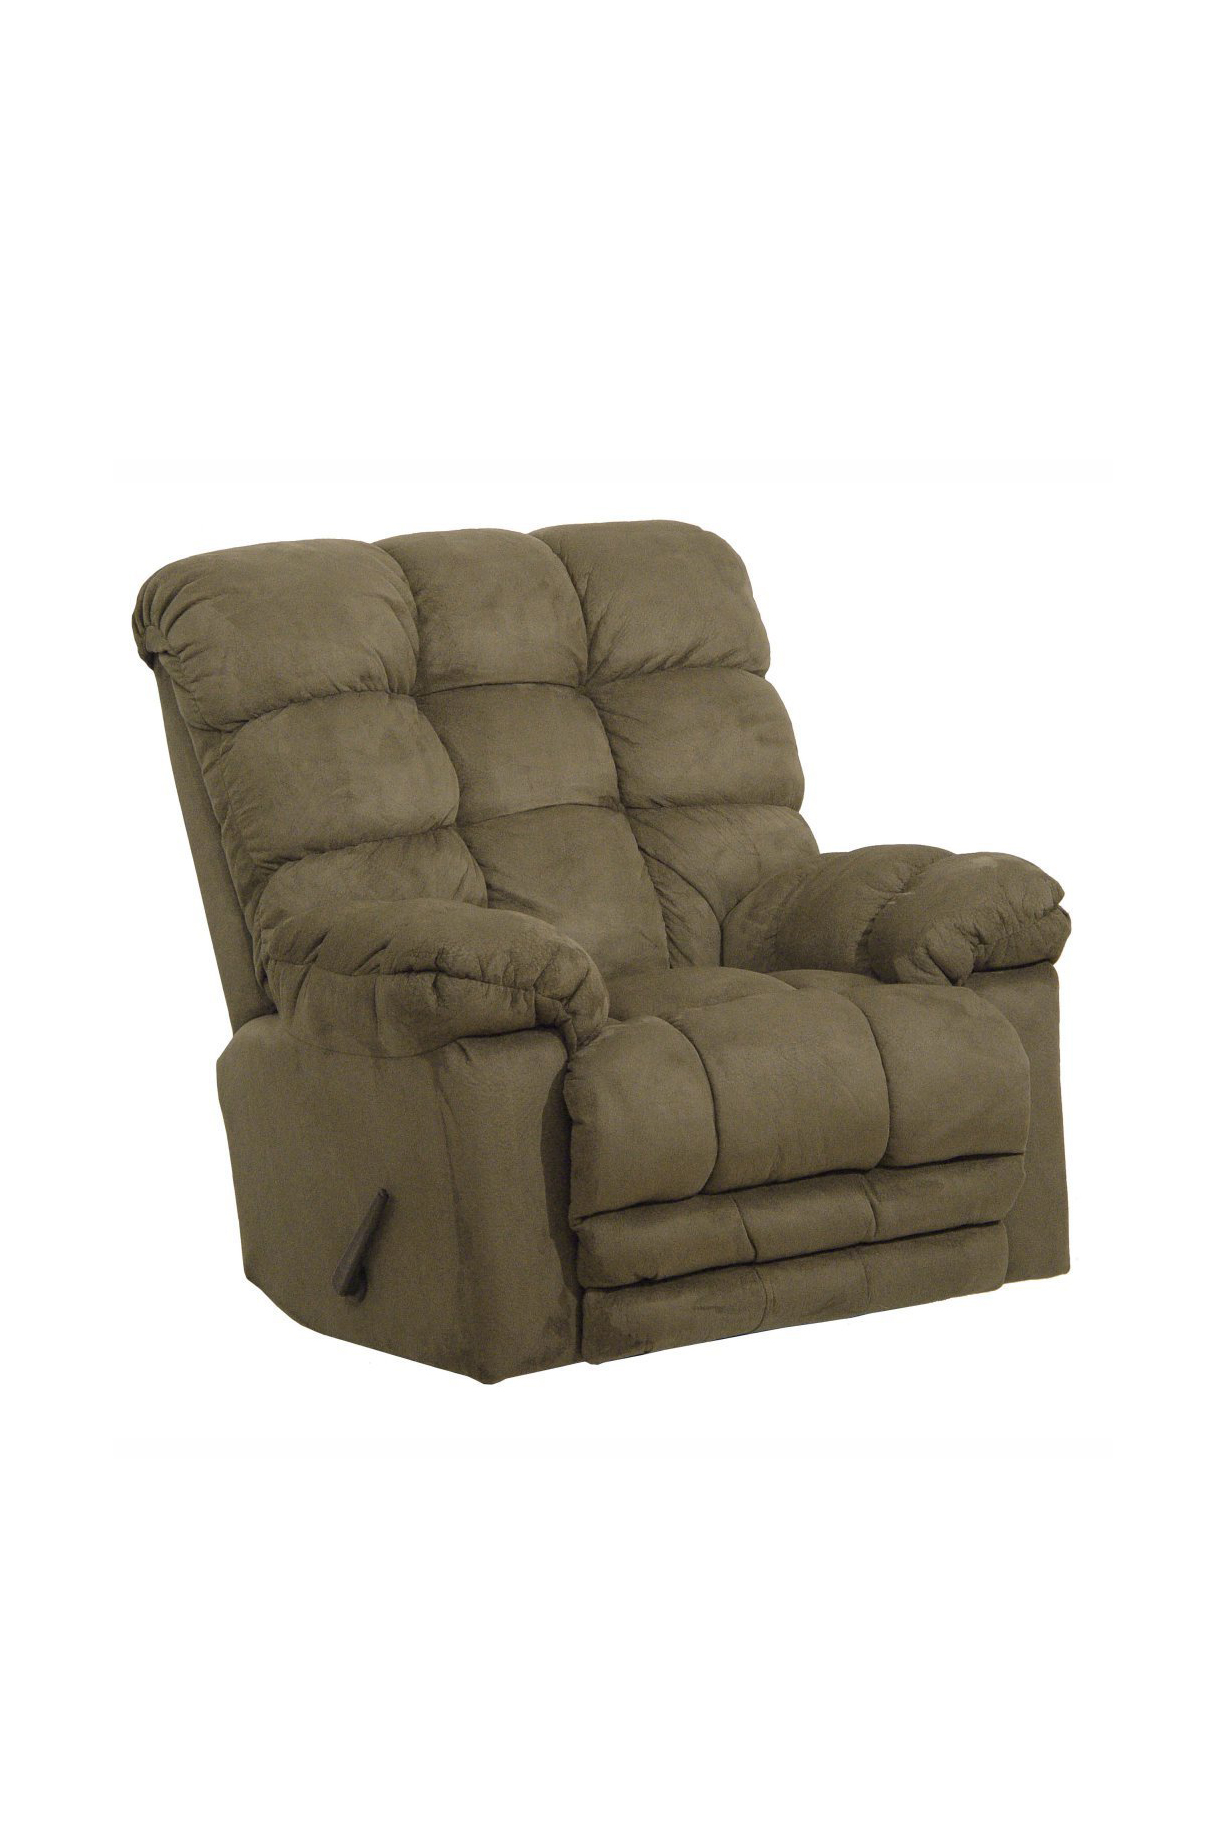 sc 1 st  Good Housekeeping & 15 Best Recliners - Top Rated Stylish Recliner Chairs islam-shia.org